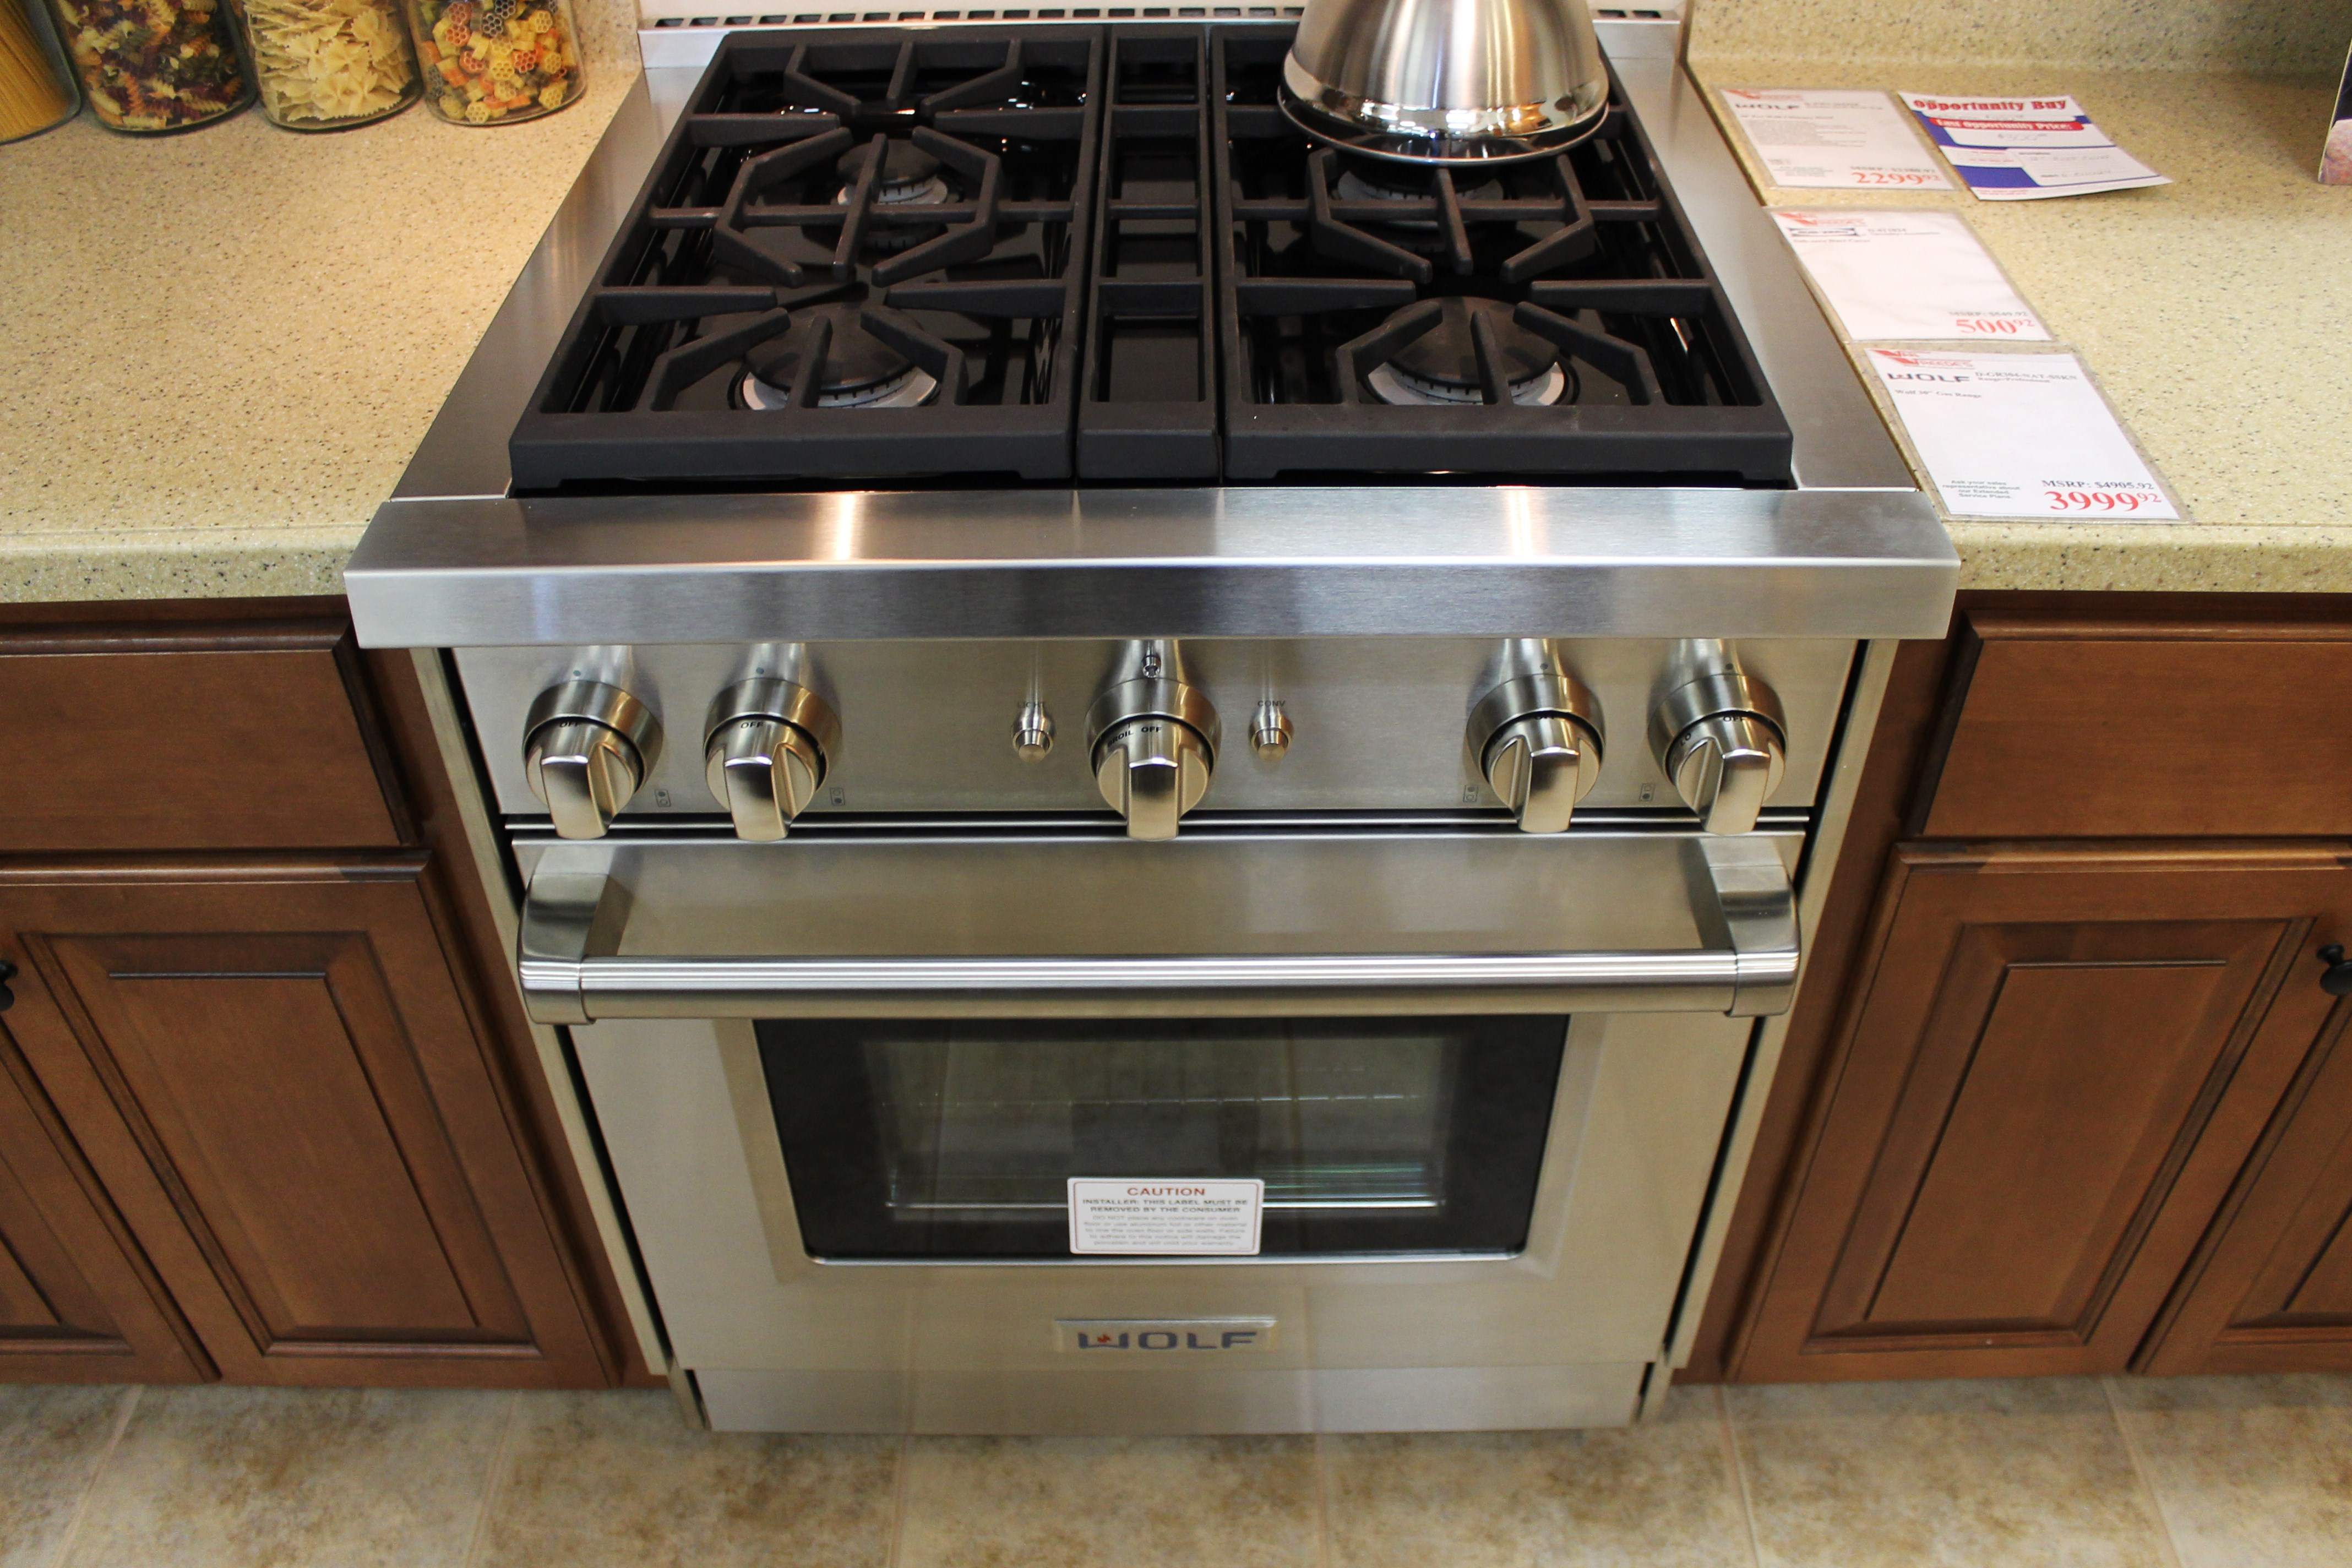 Built In Gas Range And Oven Mycoffeepot Org